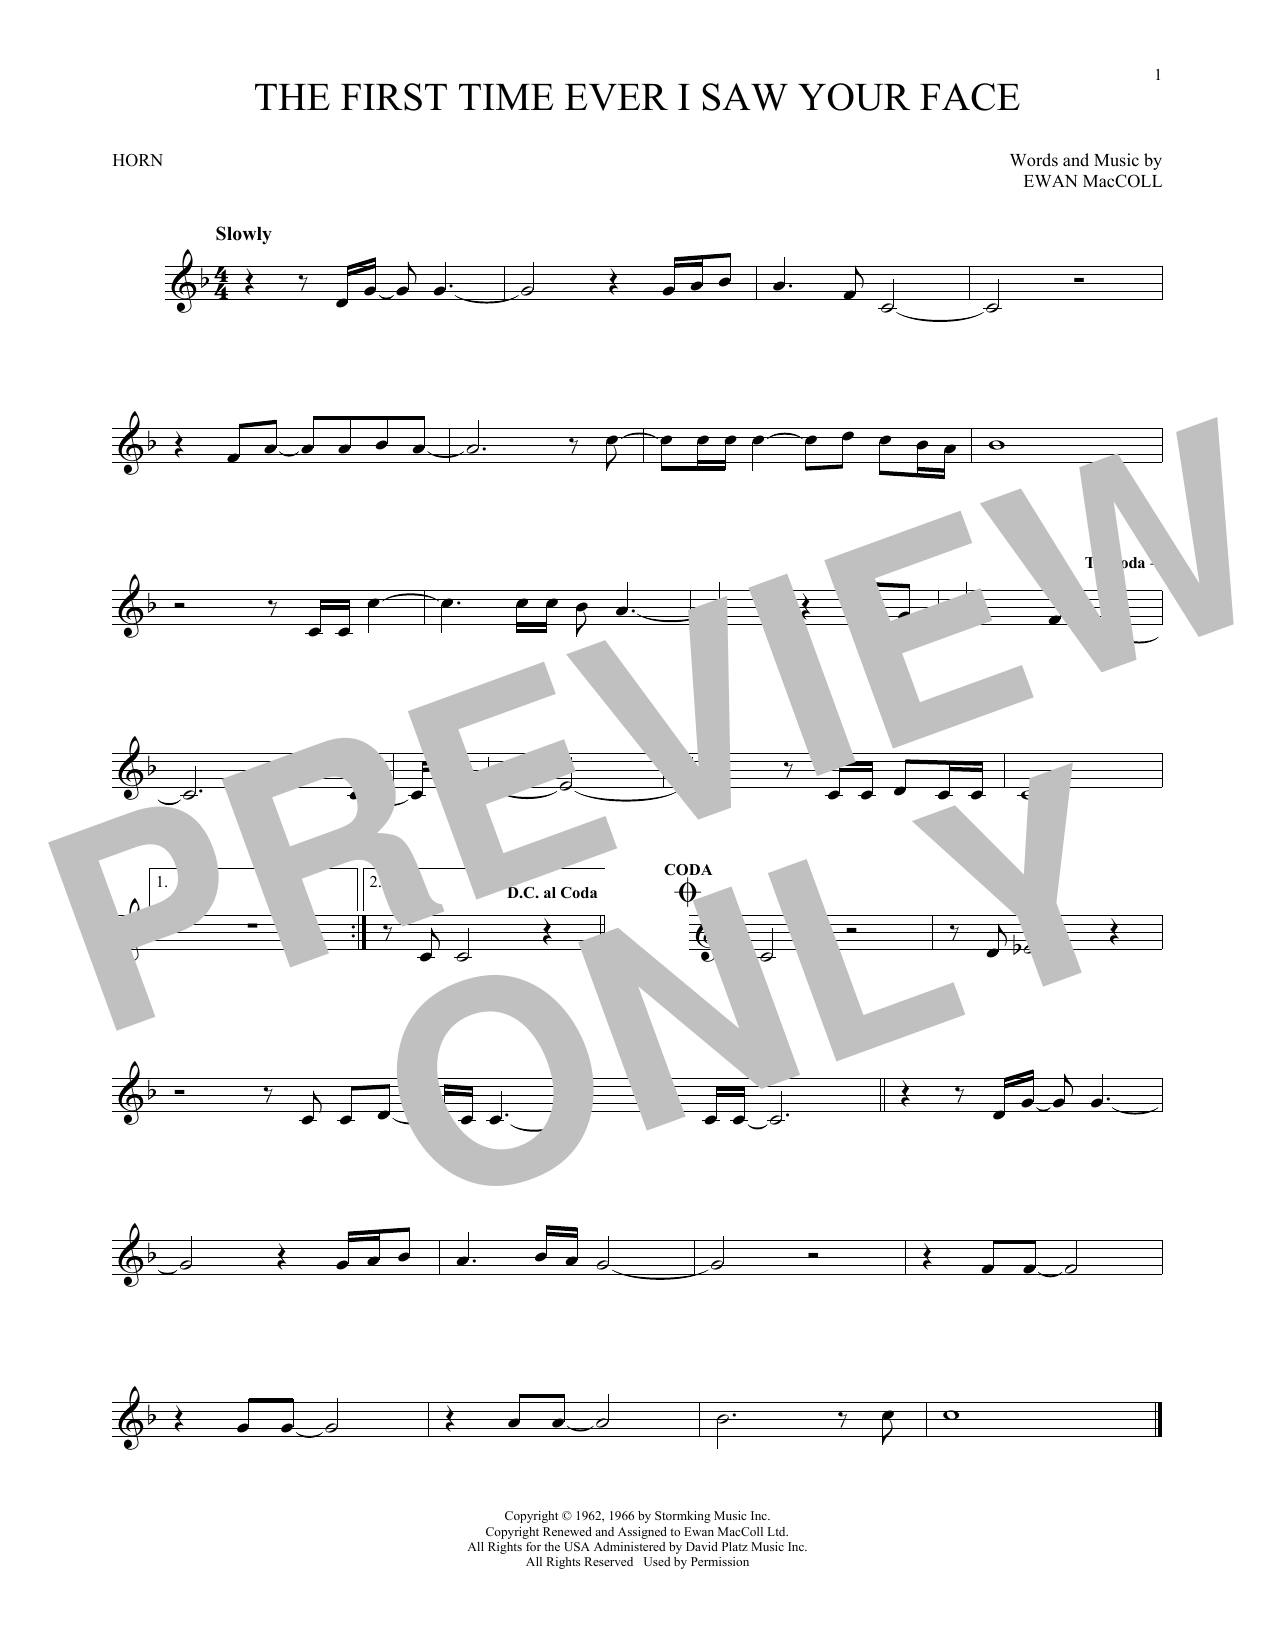 The First Time Ever I Saw Your Face (French Horn Solo)